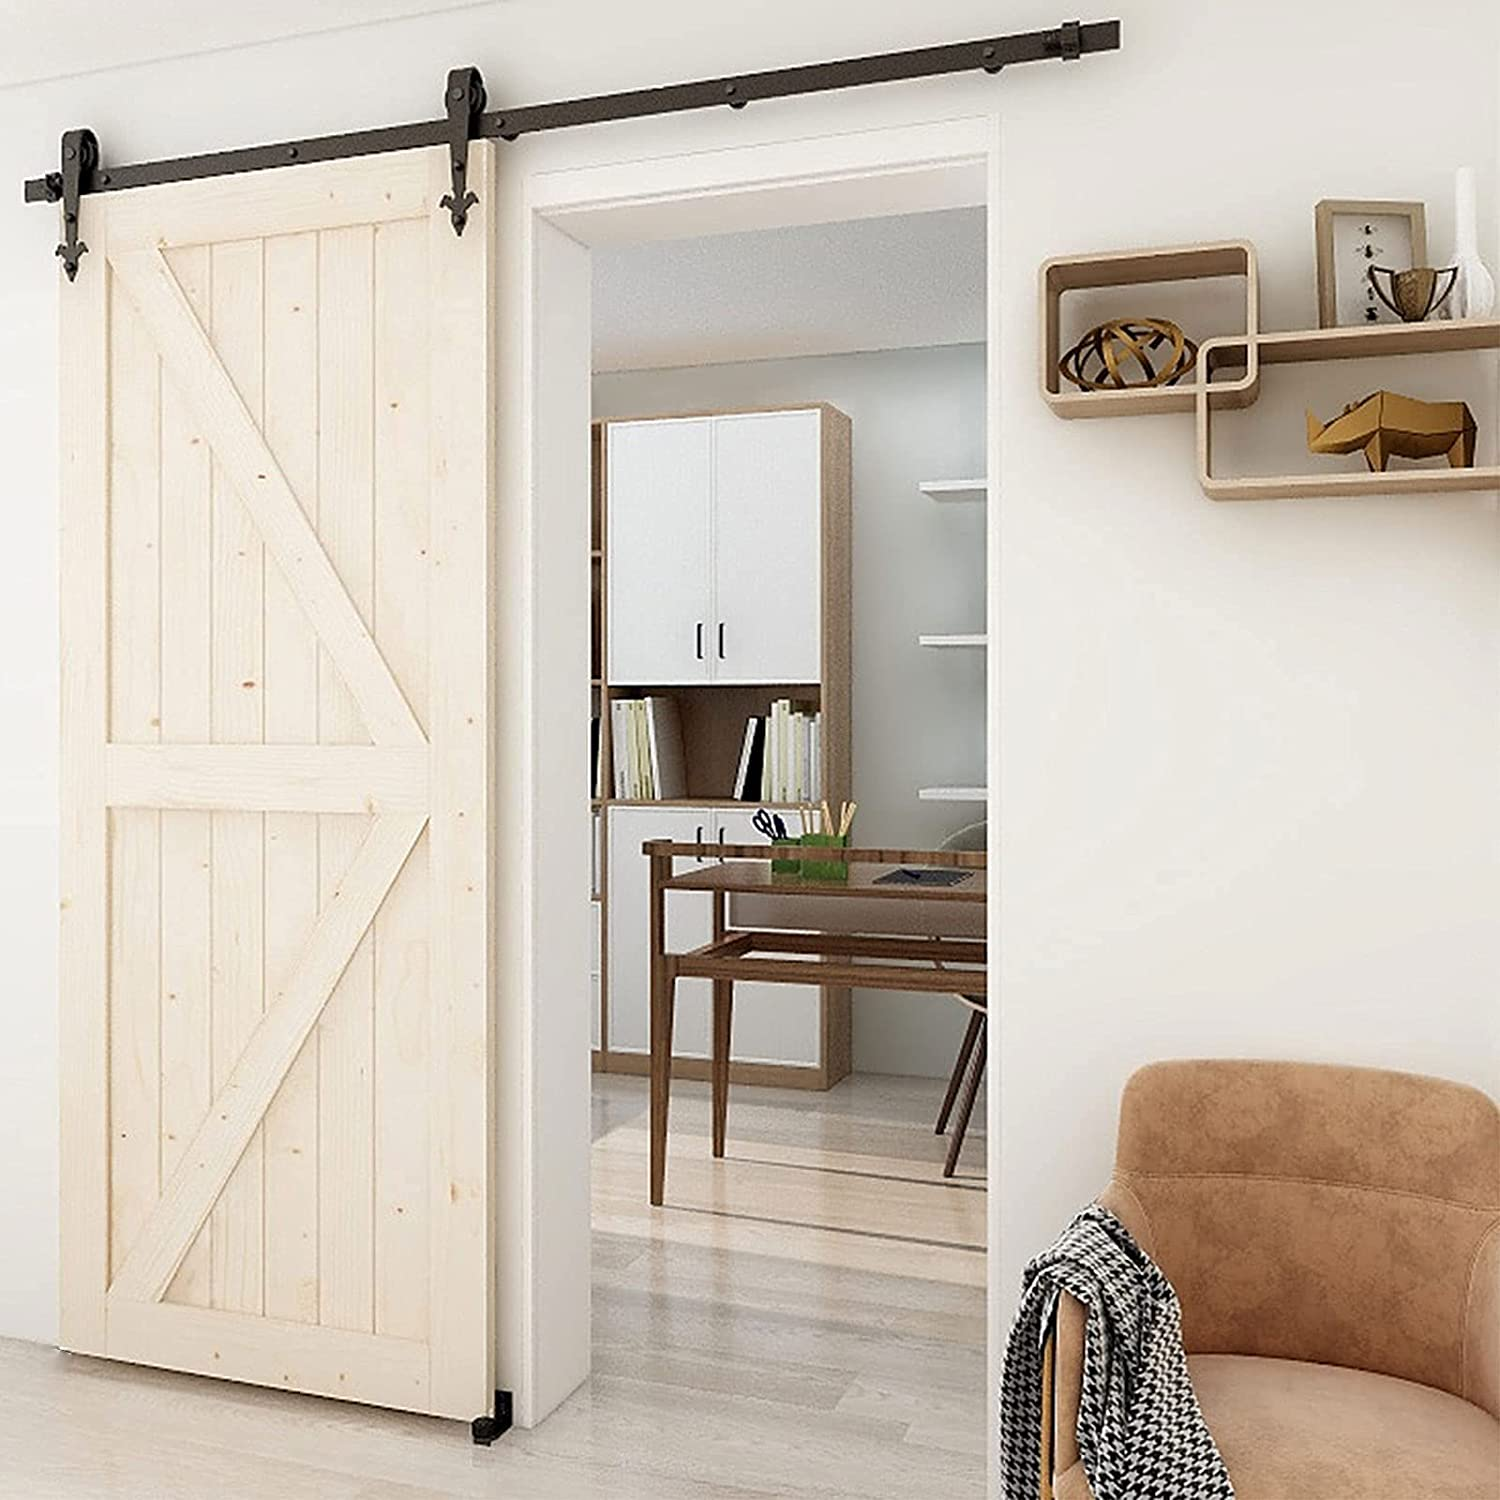 Max 67% OFF 5.5FT Heavy Duty Over item handling Sliding Barn Door Hardware and Kit Smoothly Qu